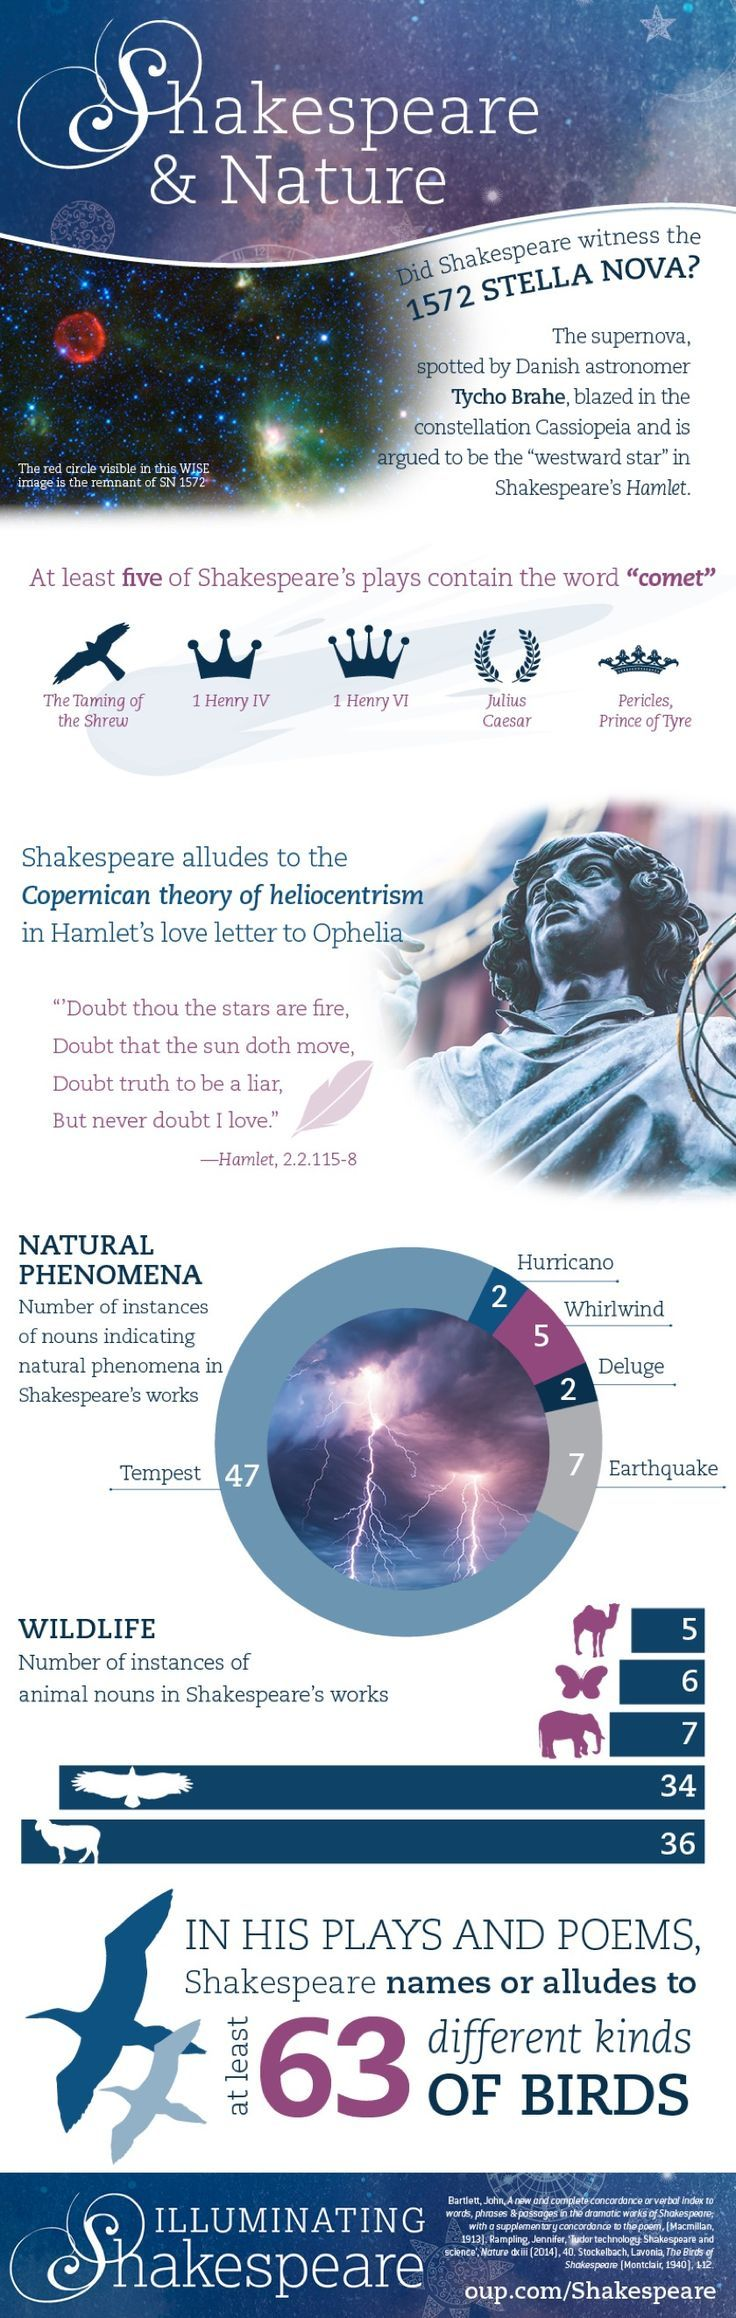 To celebrate the 400th anniversary of William Shakespeare's death, Oxford University Press frequently releases infographics that deal with different aspects of